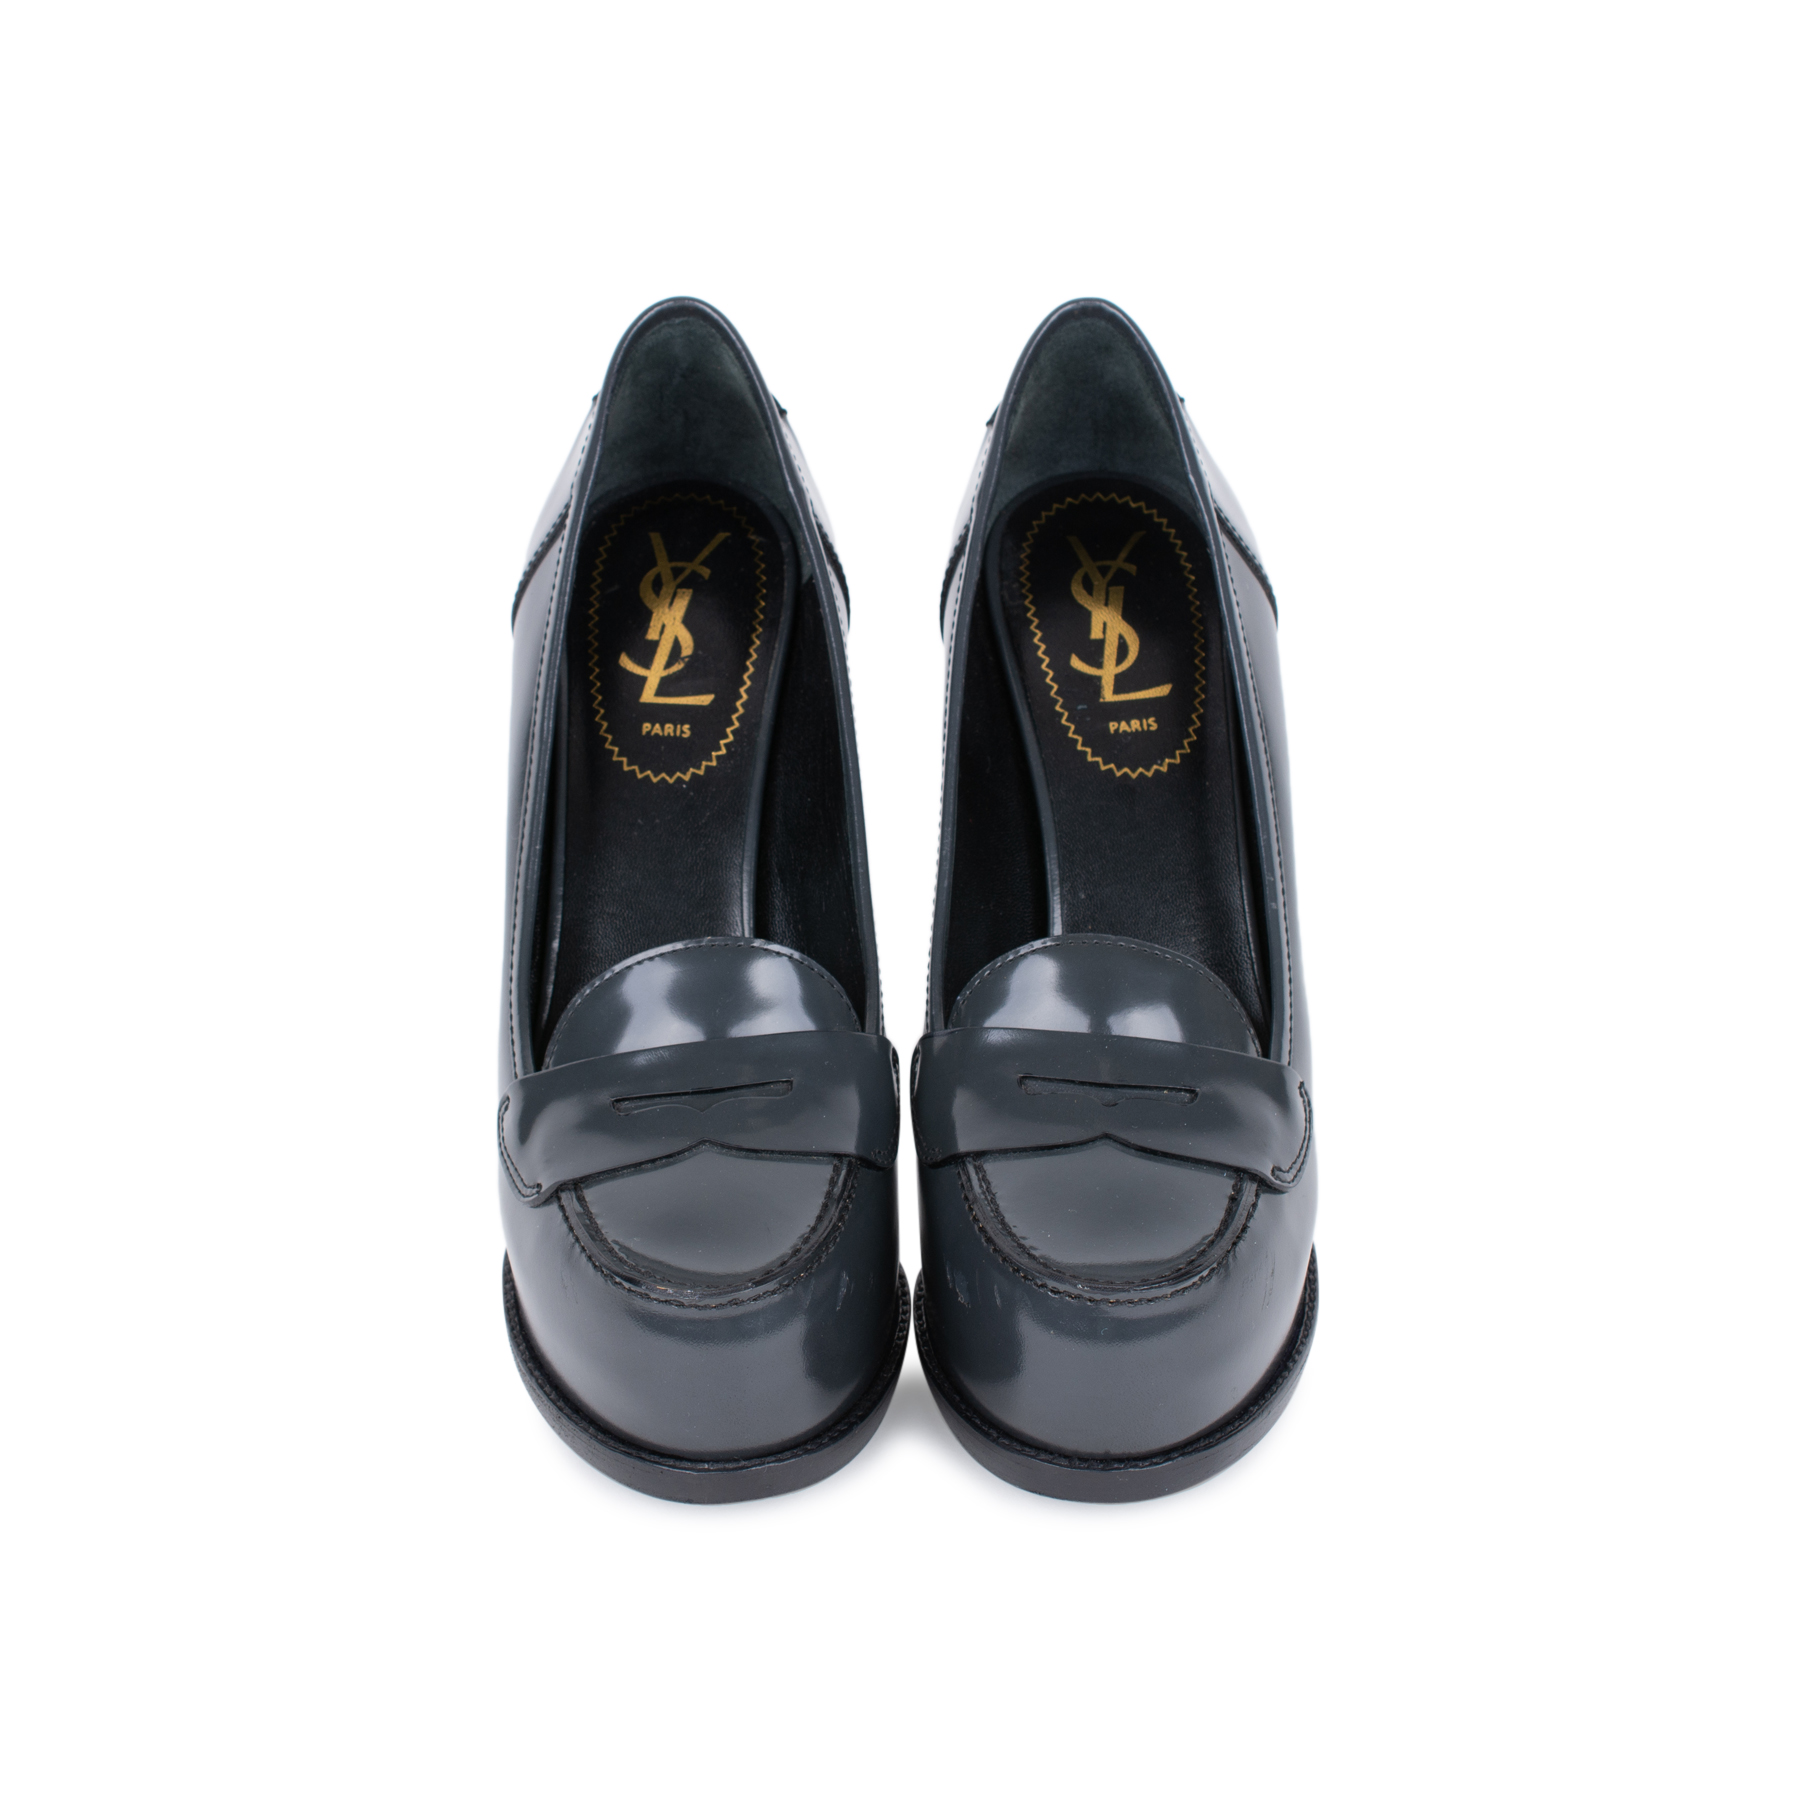 2cde928ac Authentic Second Hand Yves Saint Laurent Penny Loafer Platform Pumps  (PSS-497-00004)